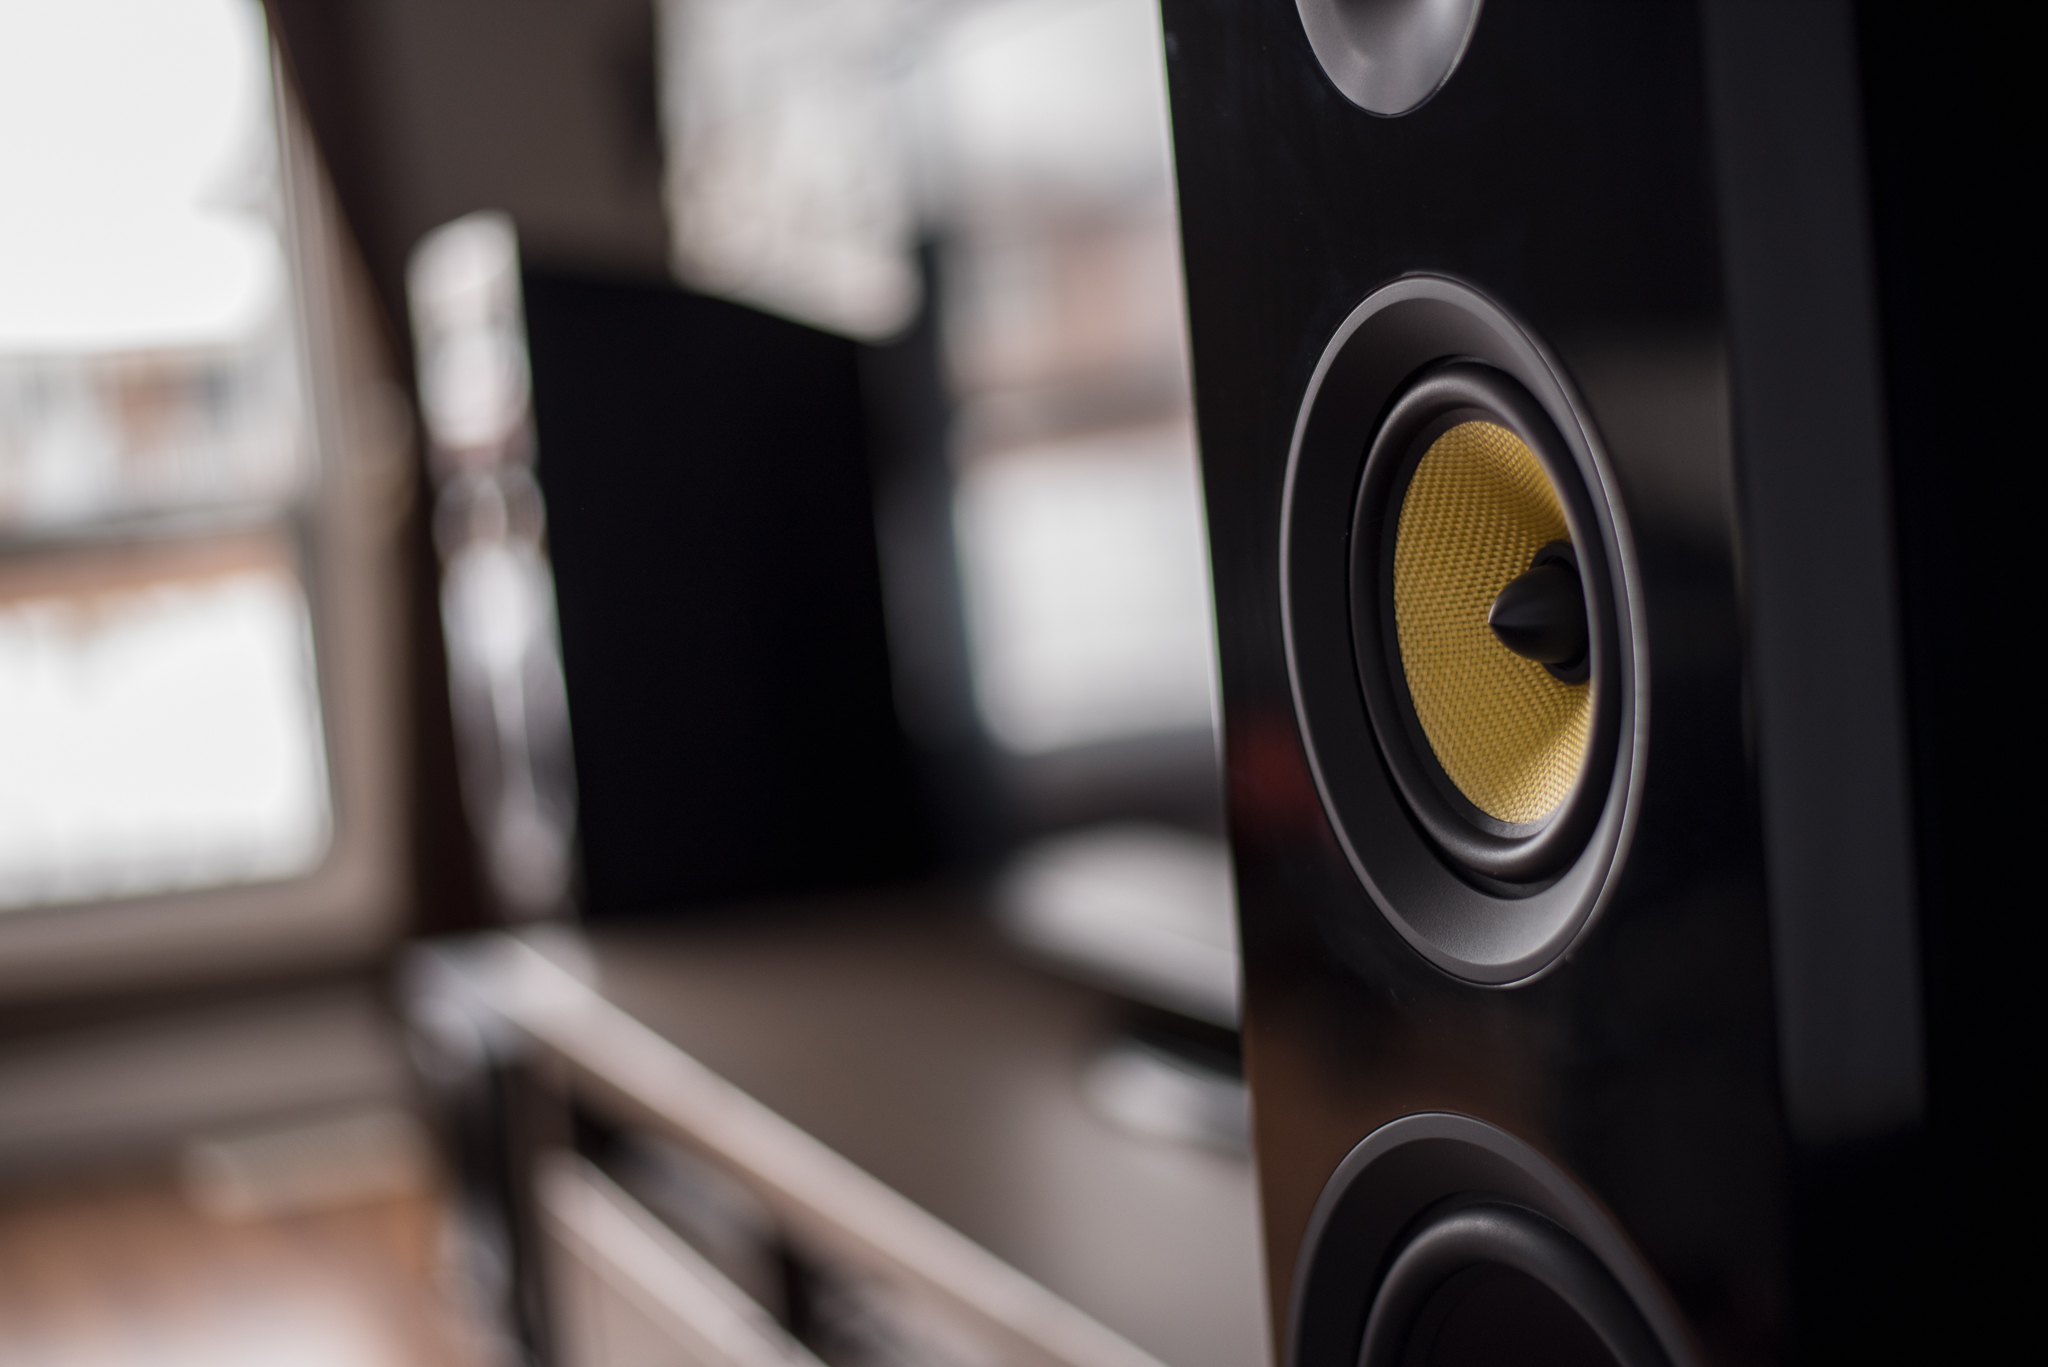 Matching Speaker Components With A Receiver - Official Fluance® Blog